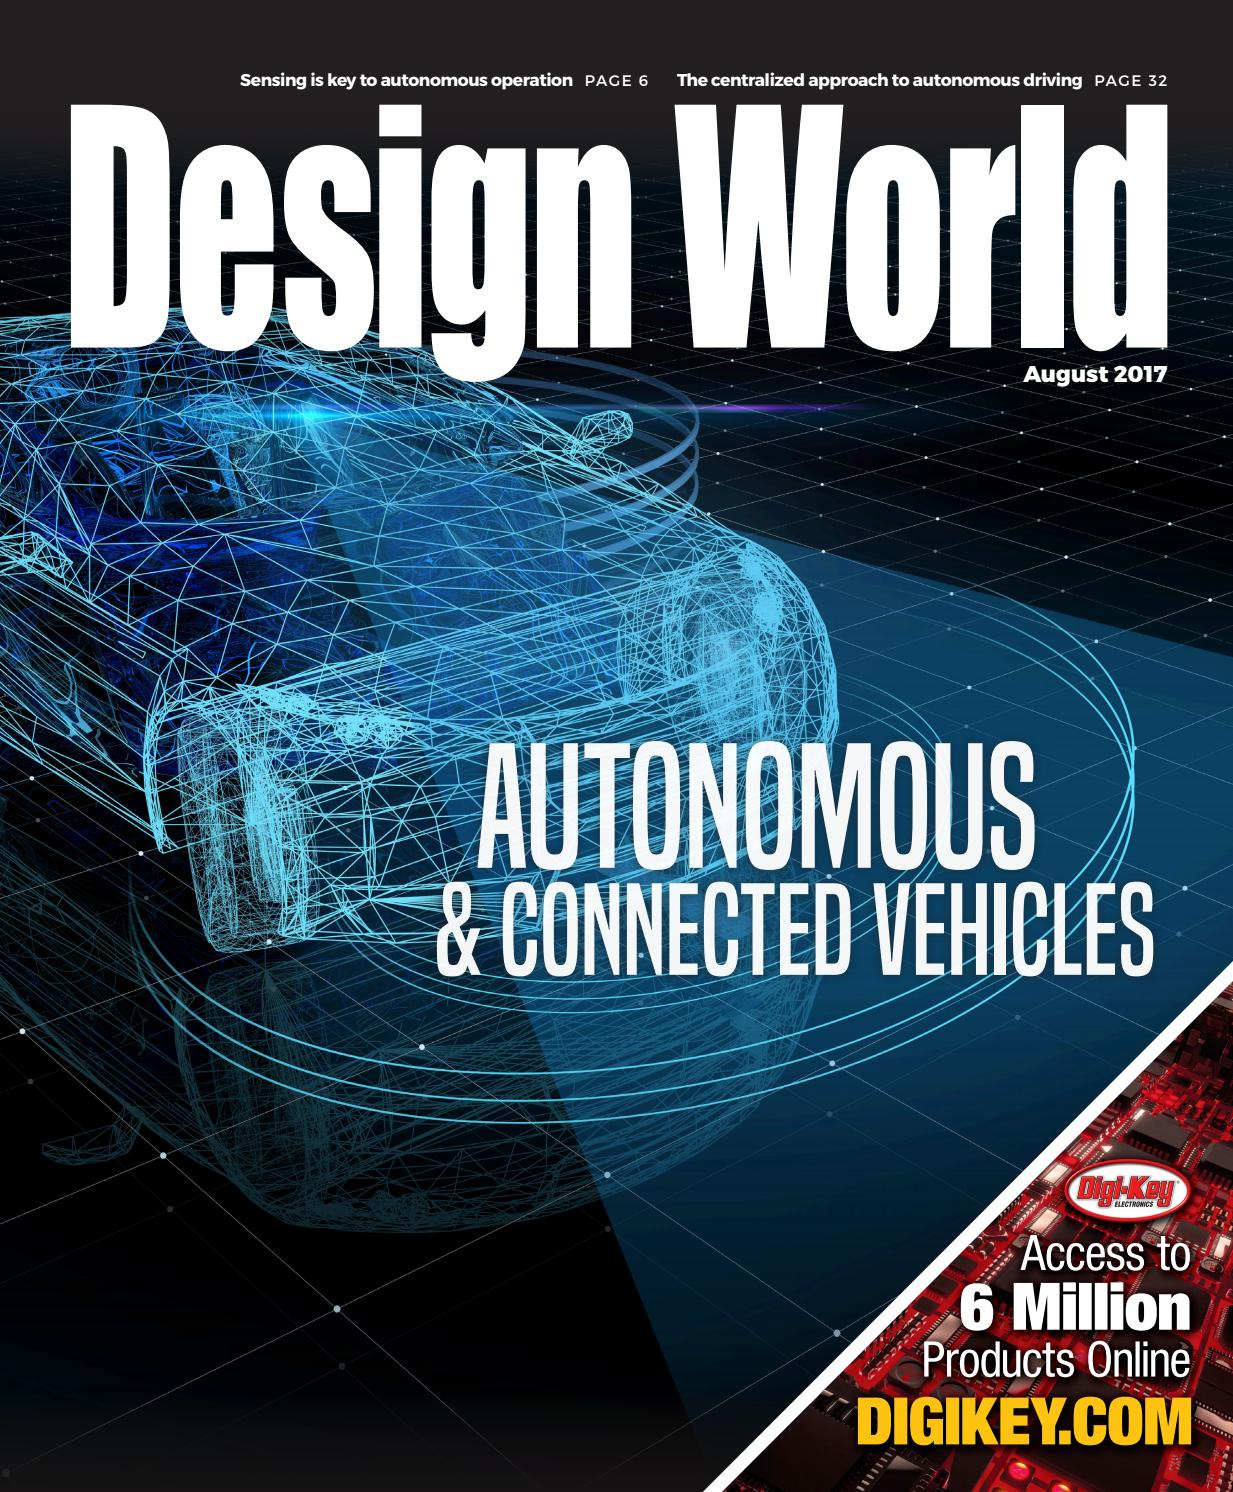 Autonomous Connected Vehicles August 2017 By Wtwh Media Llc Issuu Koa Speer Electronics Your Passive Component Partner